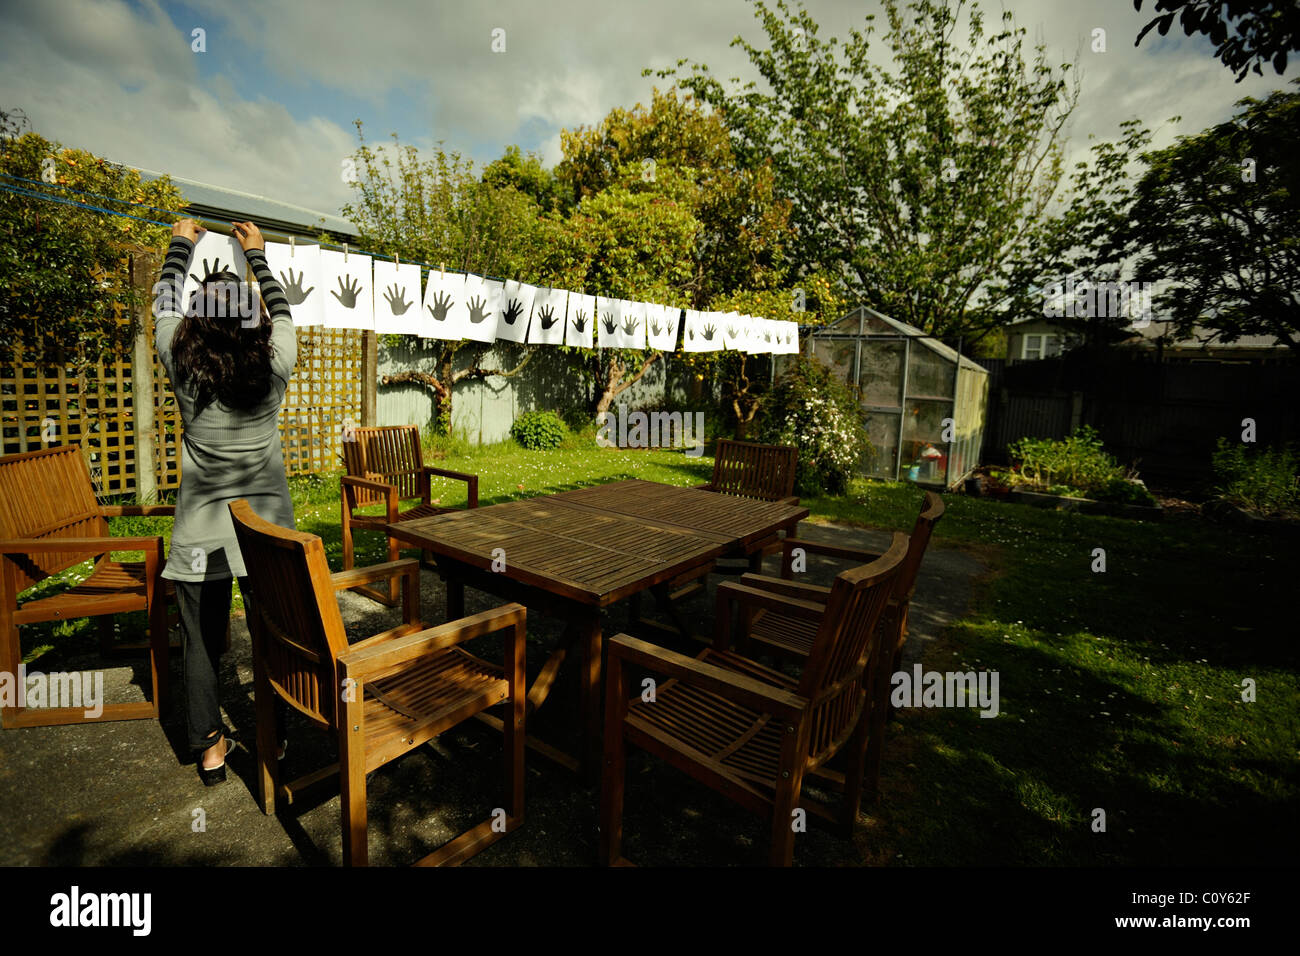 Hands on washing line. - Stock Image